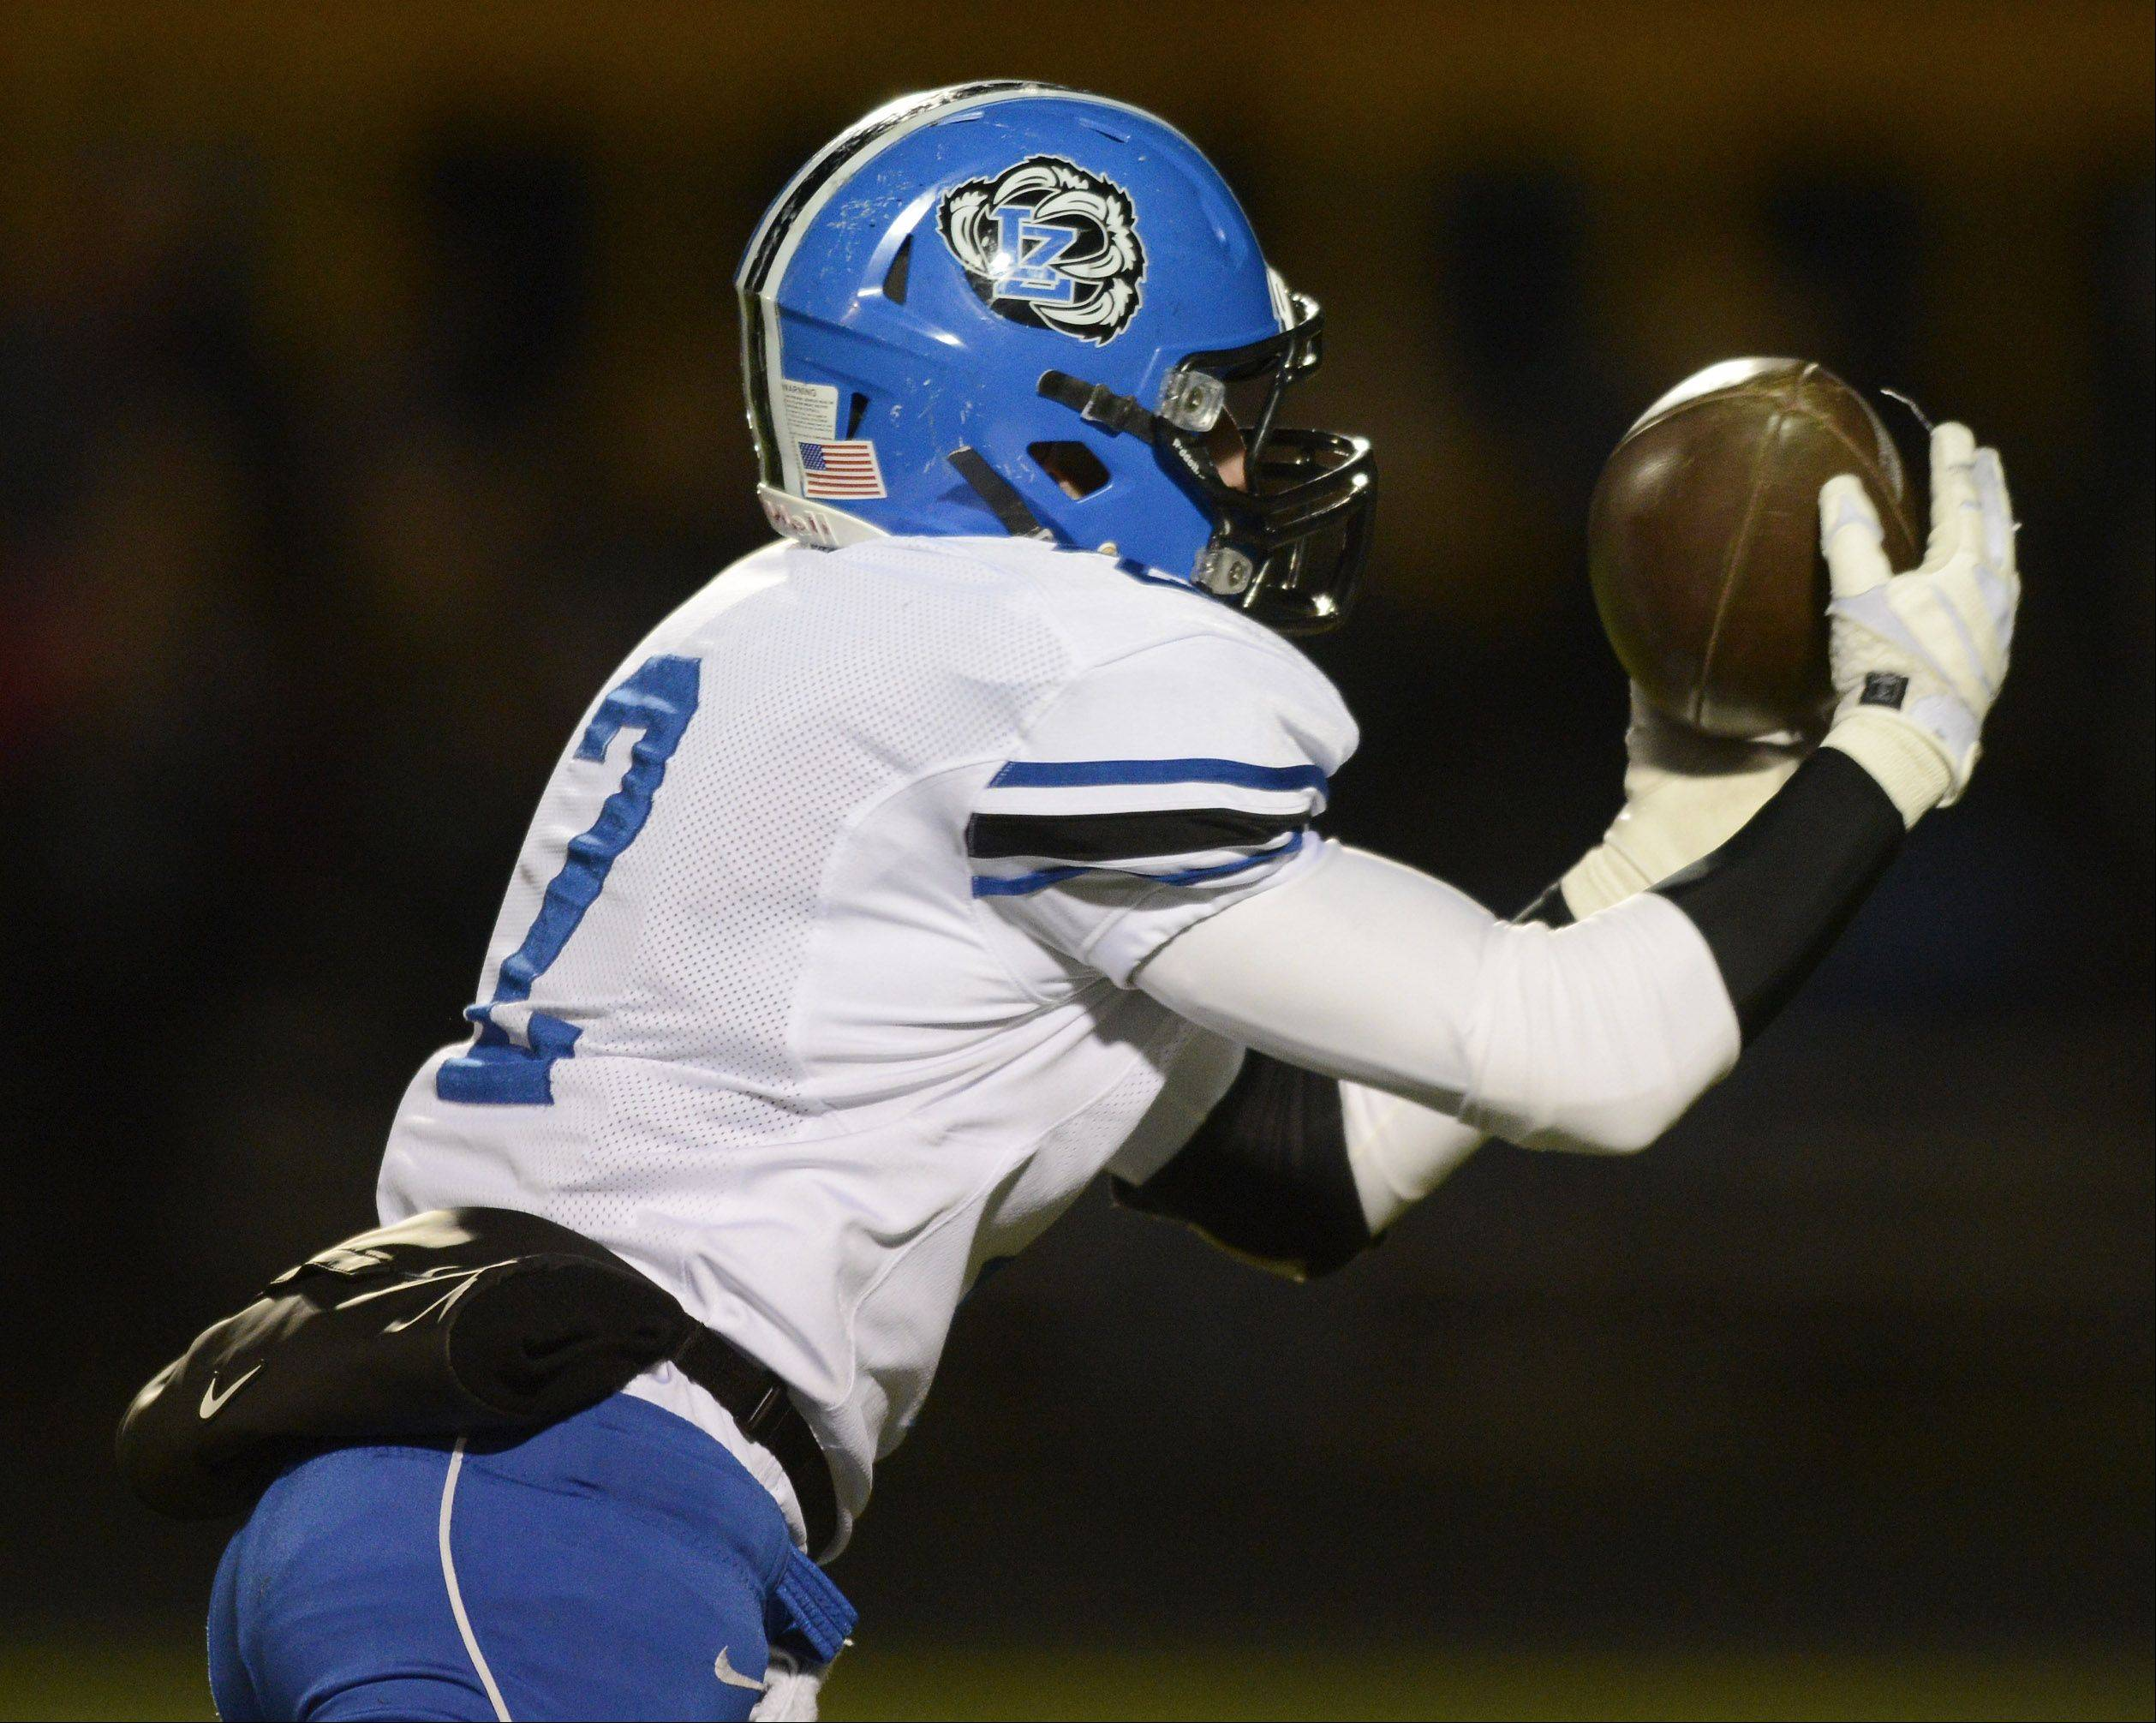 Lake Zurich's Matt Moon catches a pass.